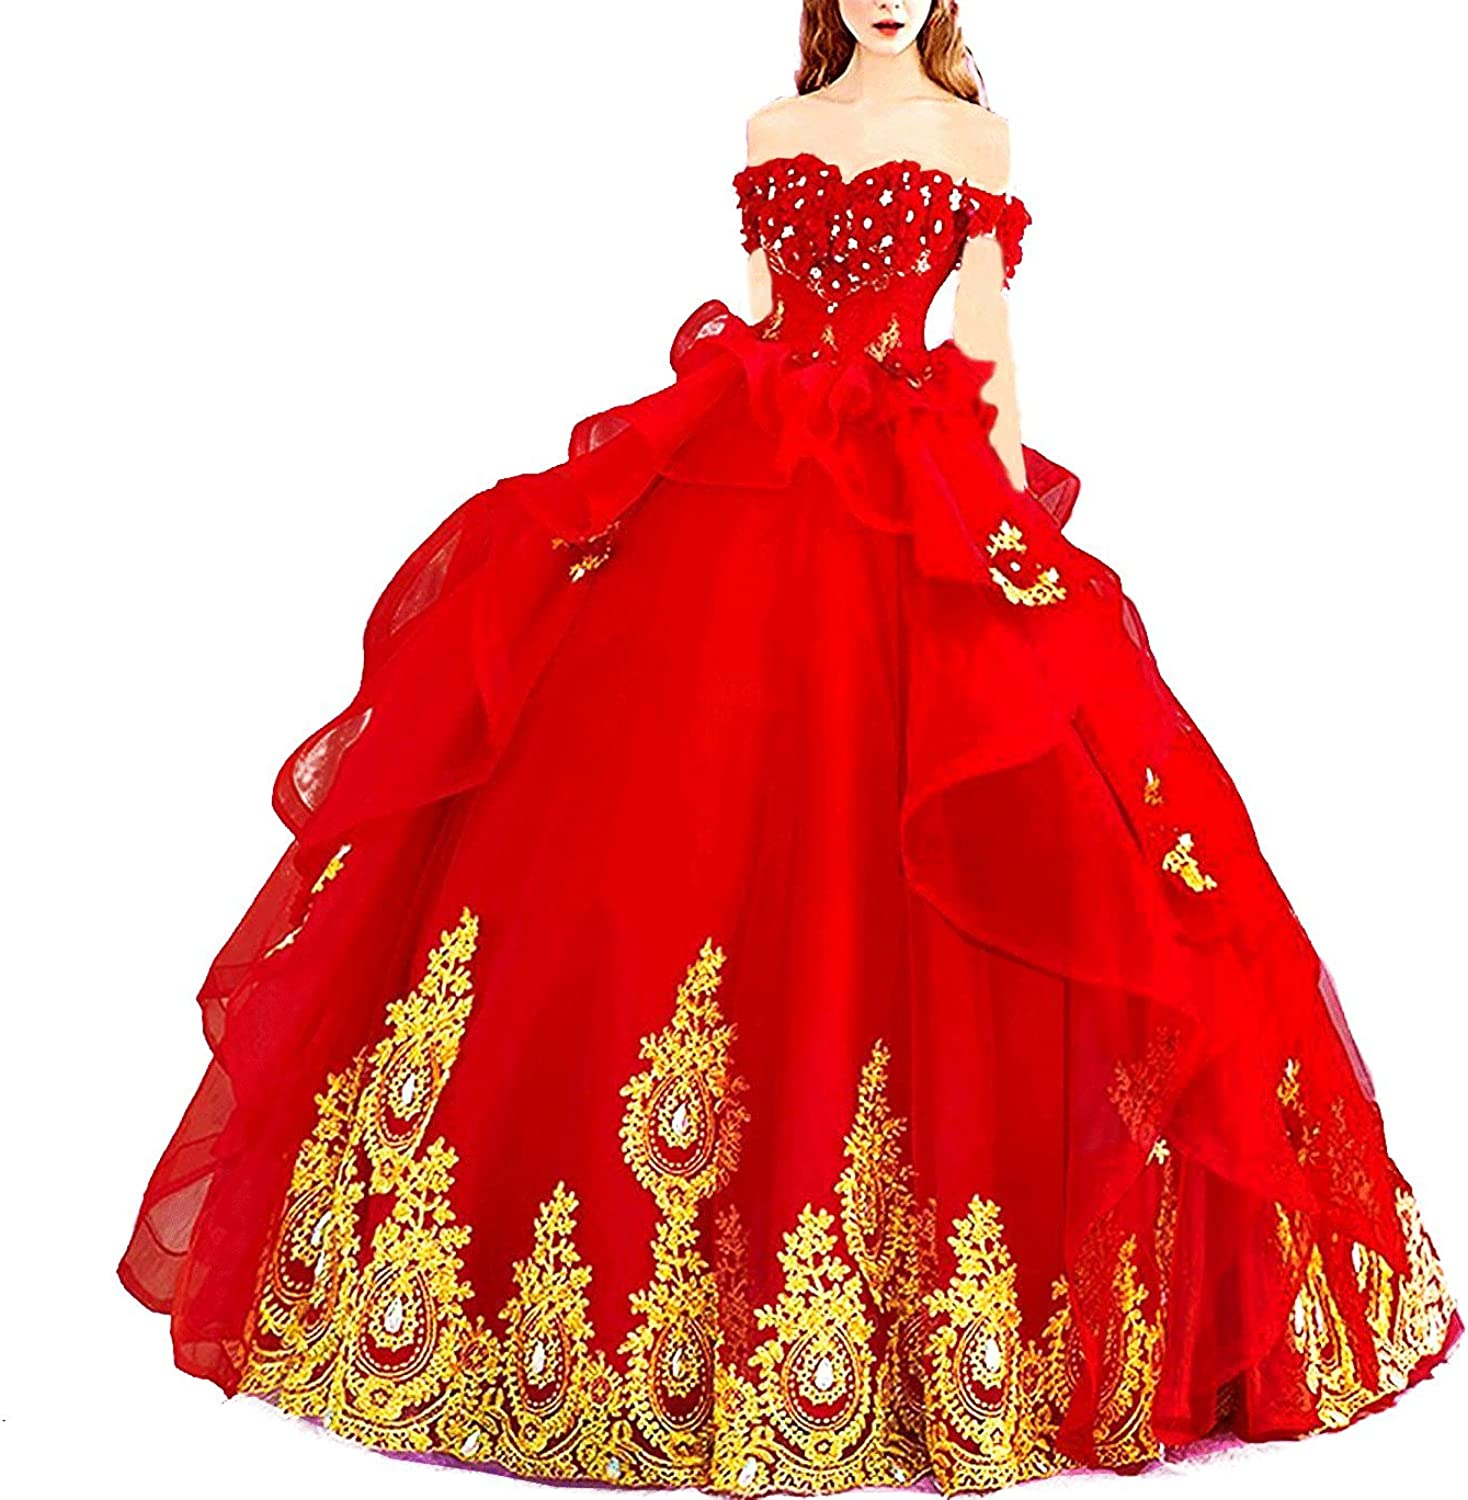 Off Shoulder Sweet 2021new Los Angeles Mall shipping free 16 Prom Ball Cosplay Princess Gown Beaded Qui